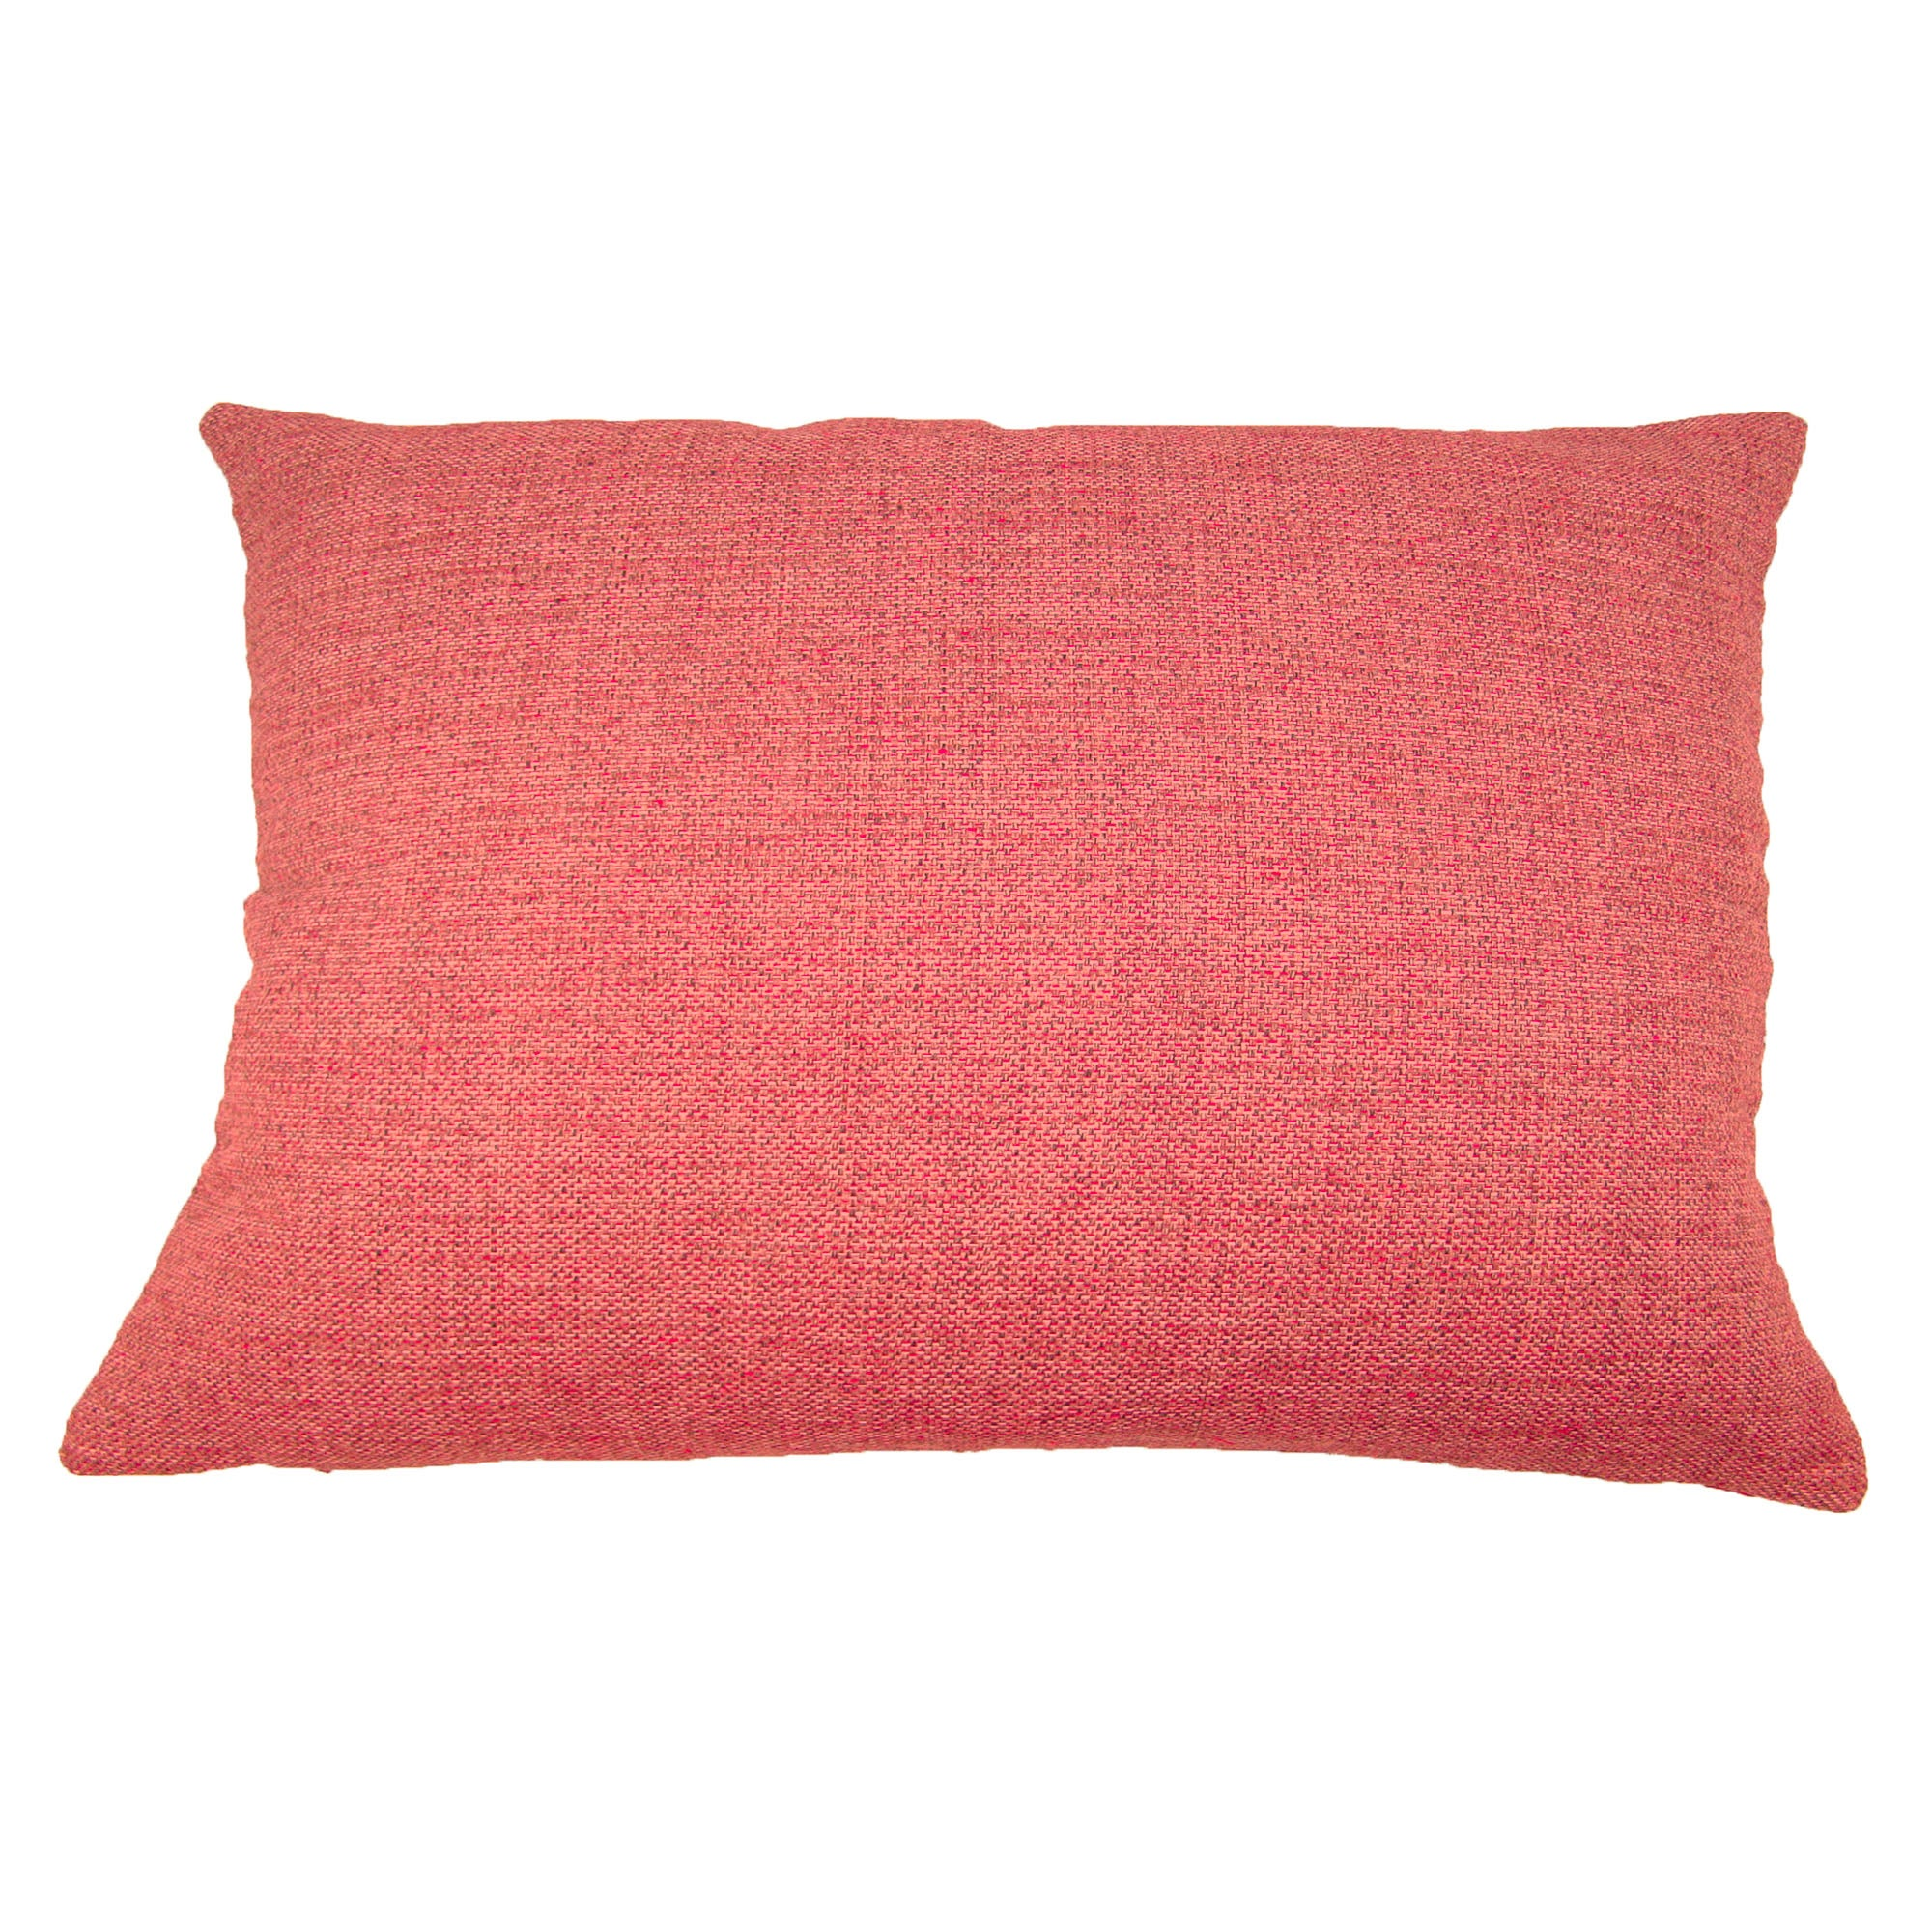 Photo of Carly rectangle cushion cover berry -pink-